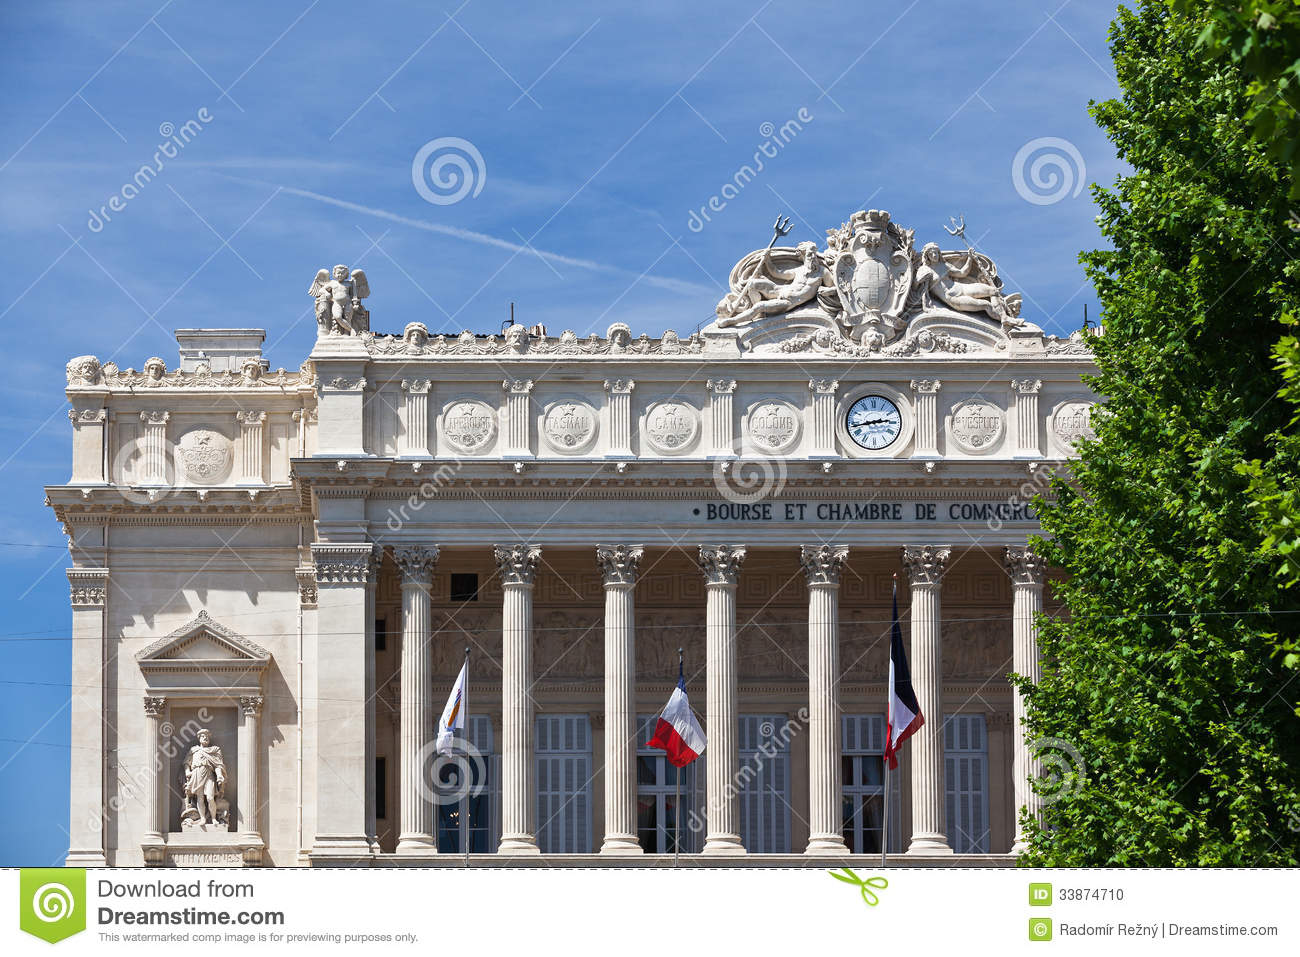 Bourse et chambre de commerce in marseille stock photo for Chambre de commerce de france